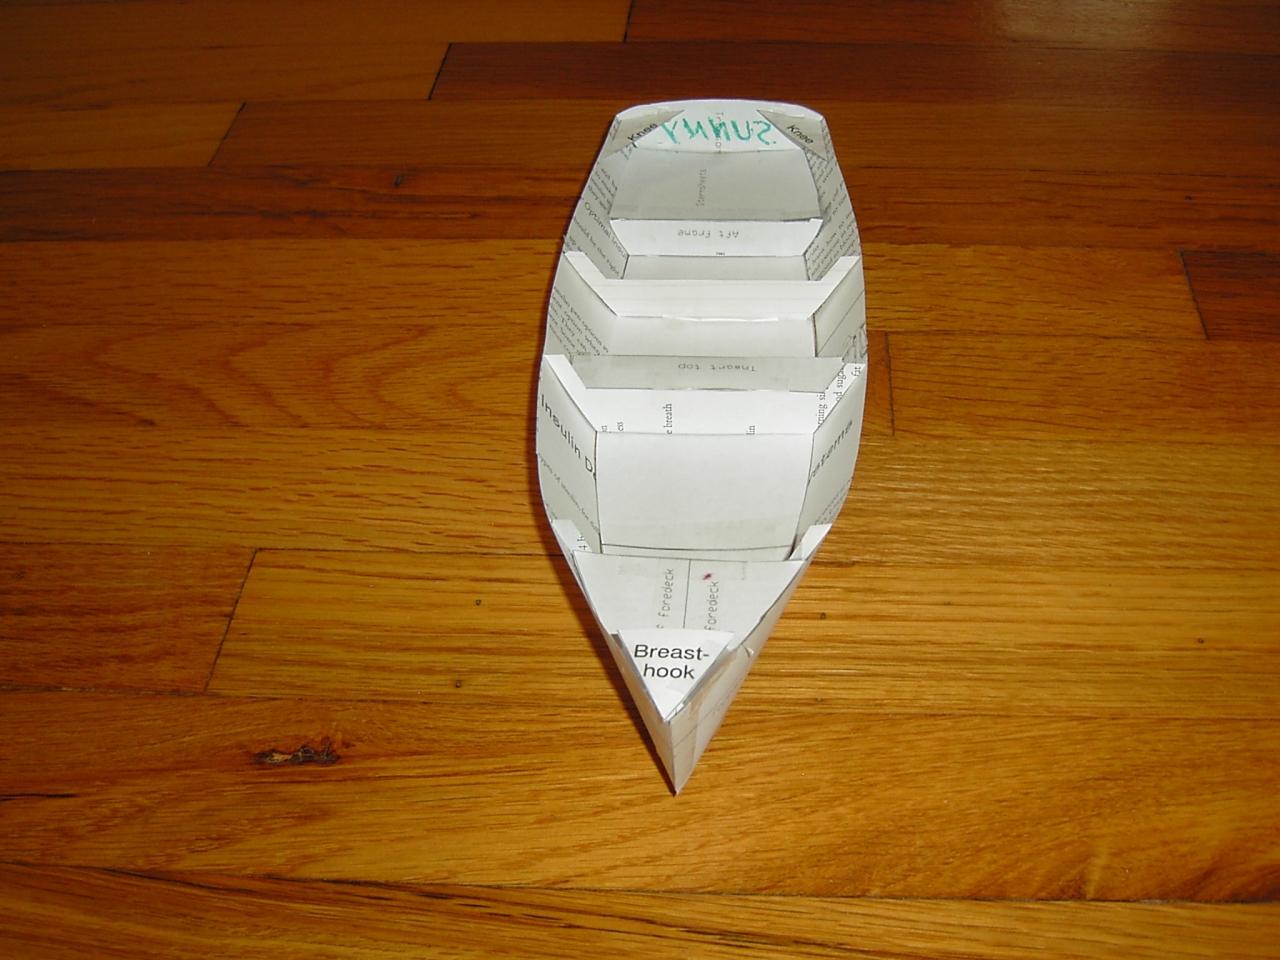 boat model plans - group picture, image by tag - keywordpictures.com